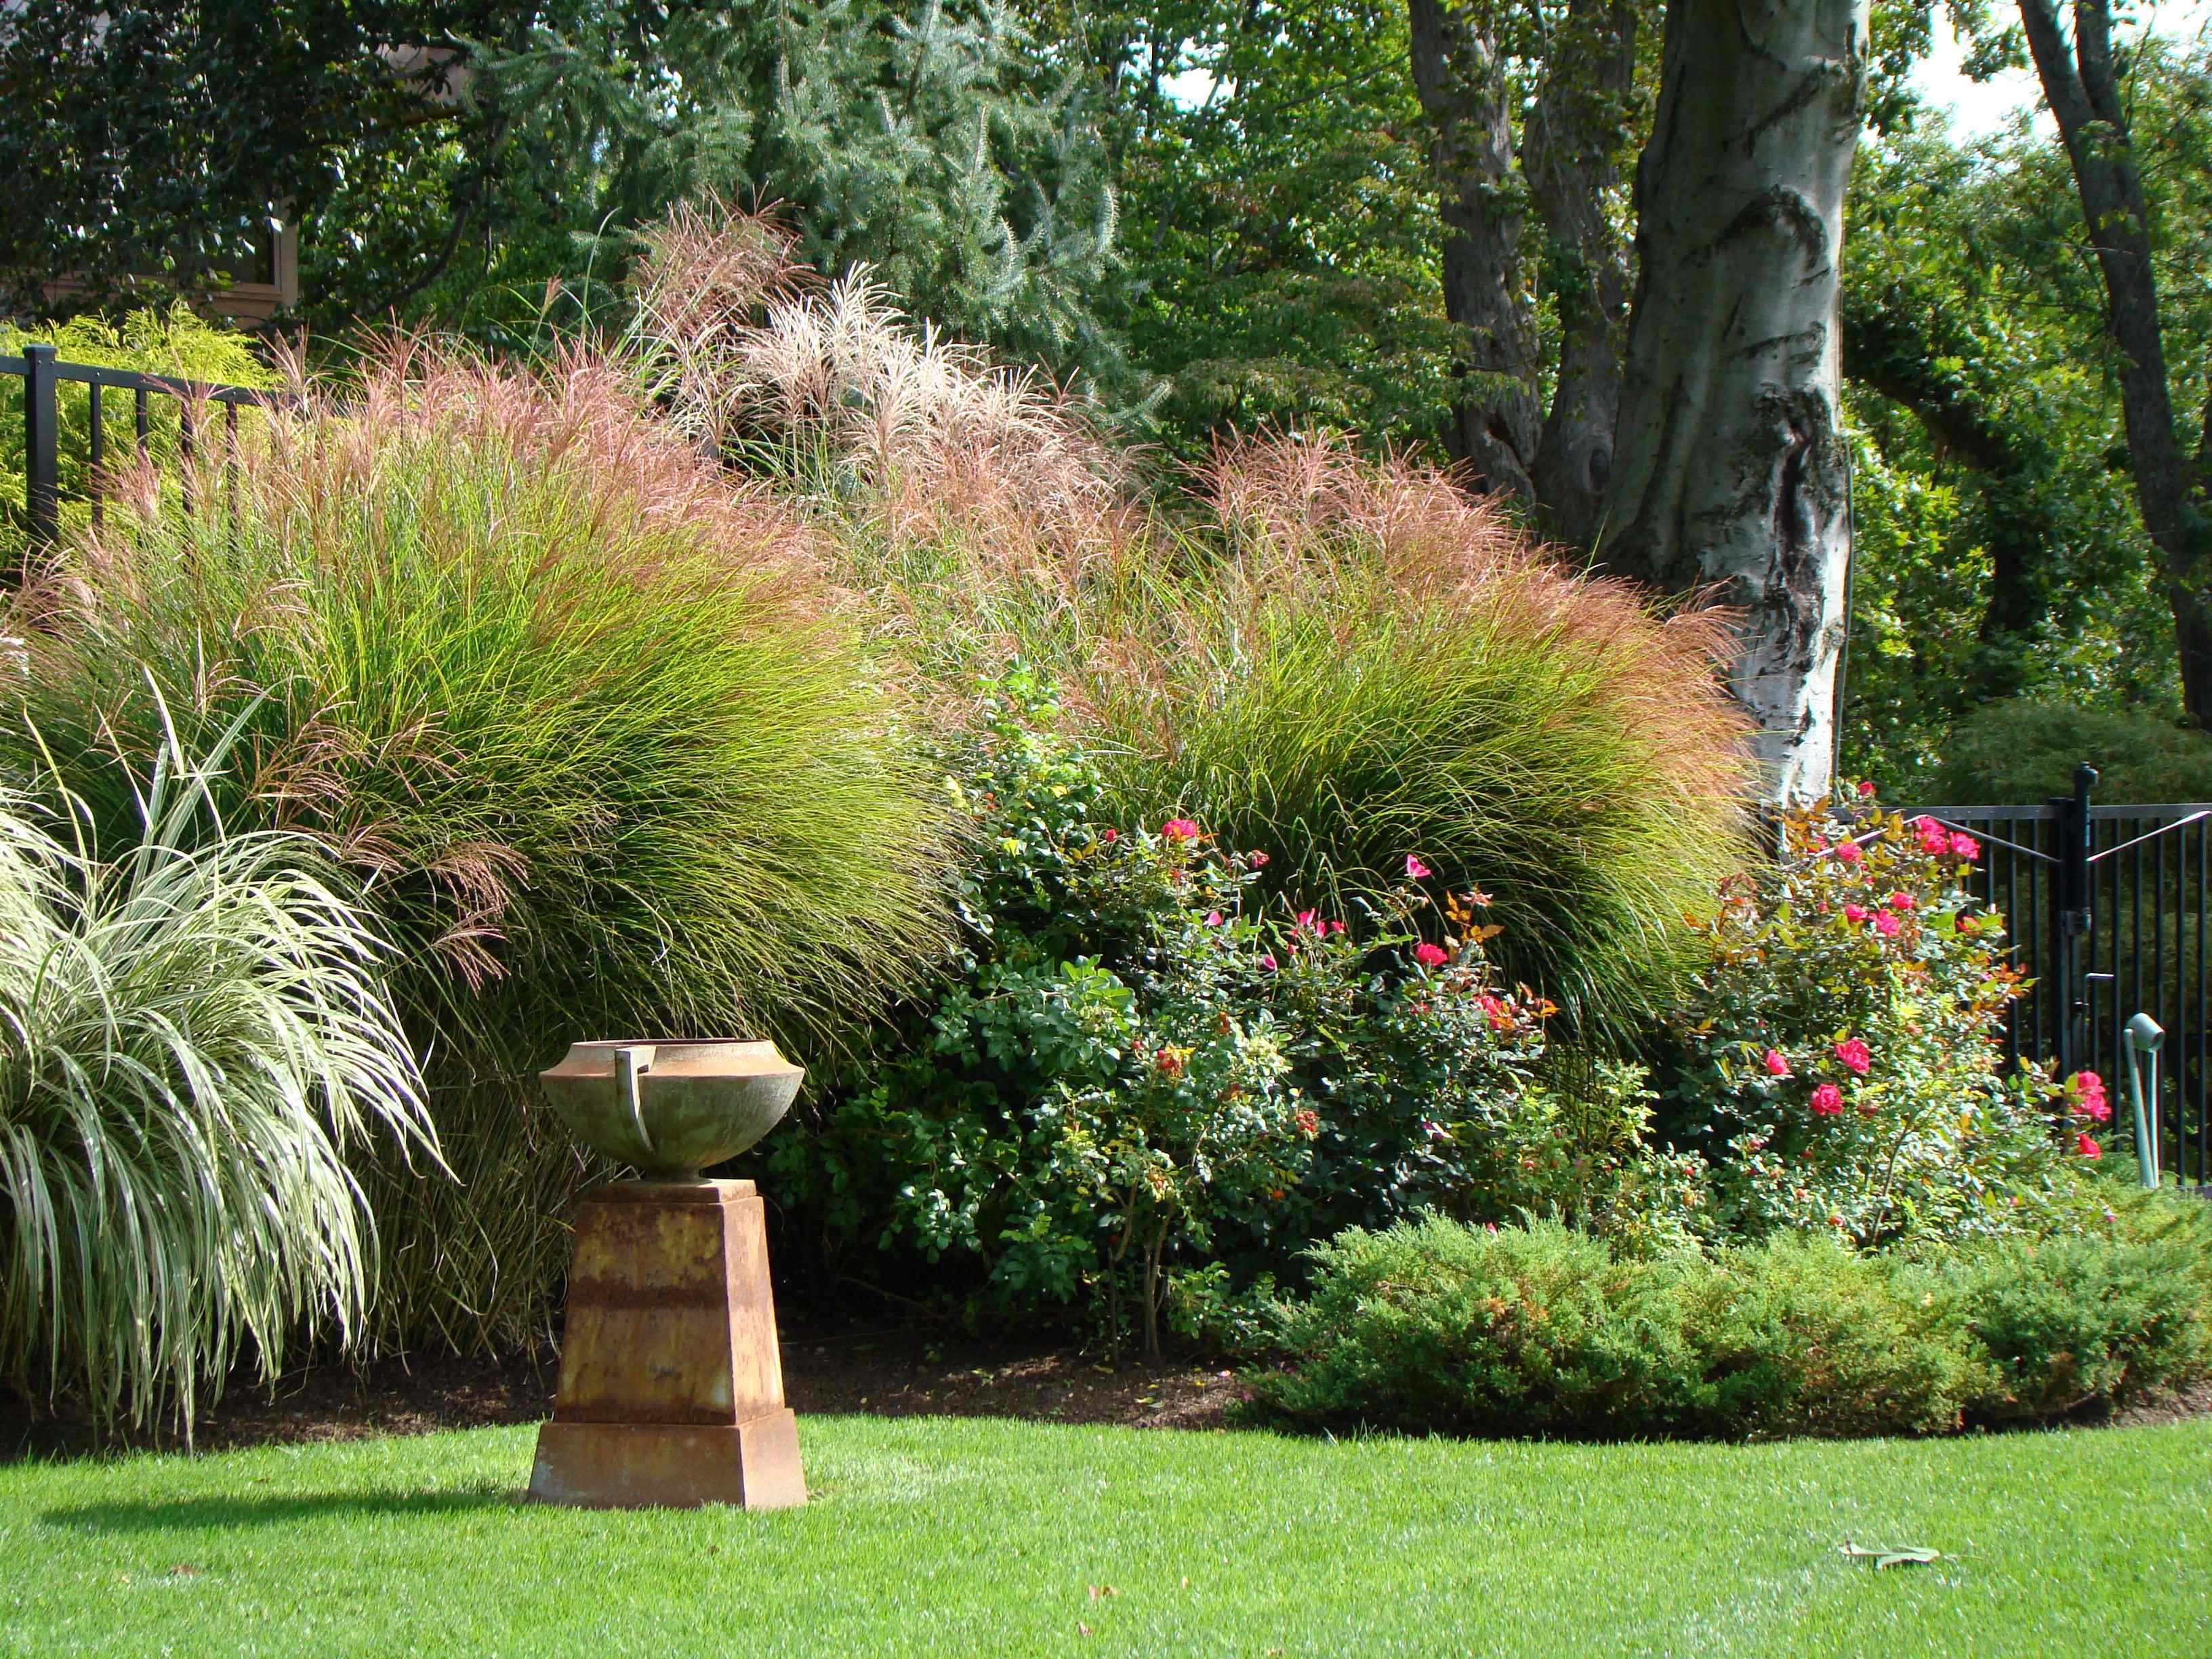 10 tips for rookie landscapers from a landscaping veteran